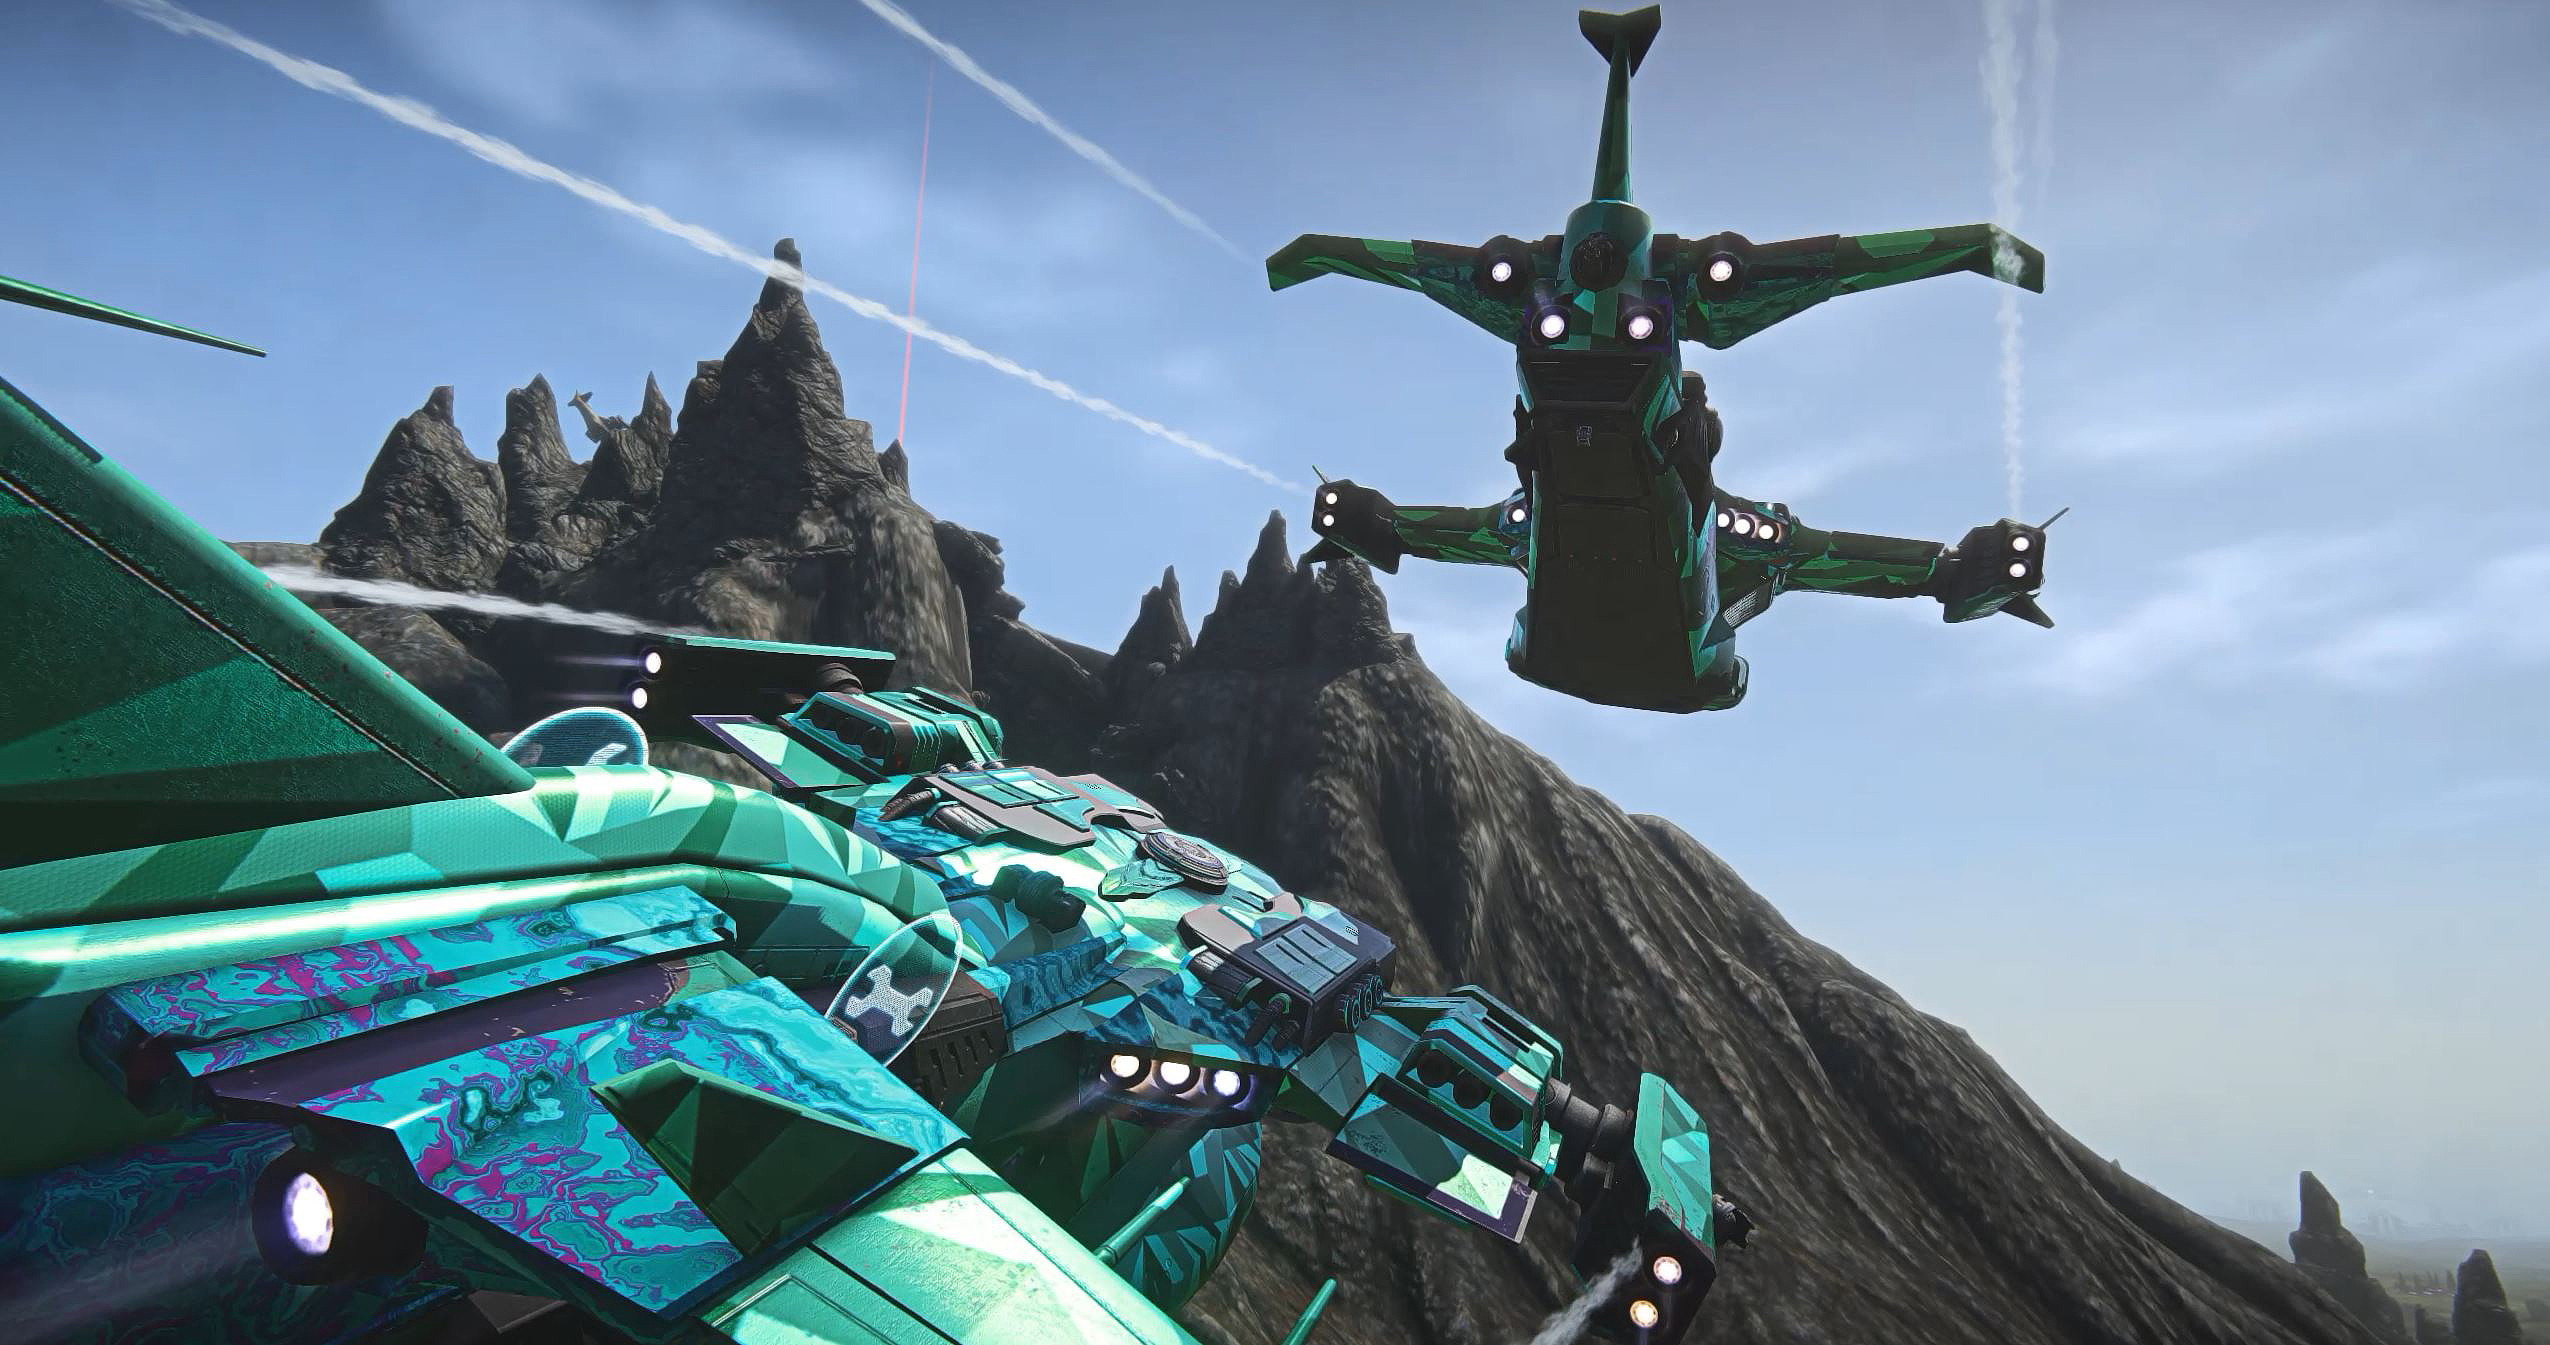 PlanetSide 2 - News - Producer's Letter - A Big Update on the Horizon